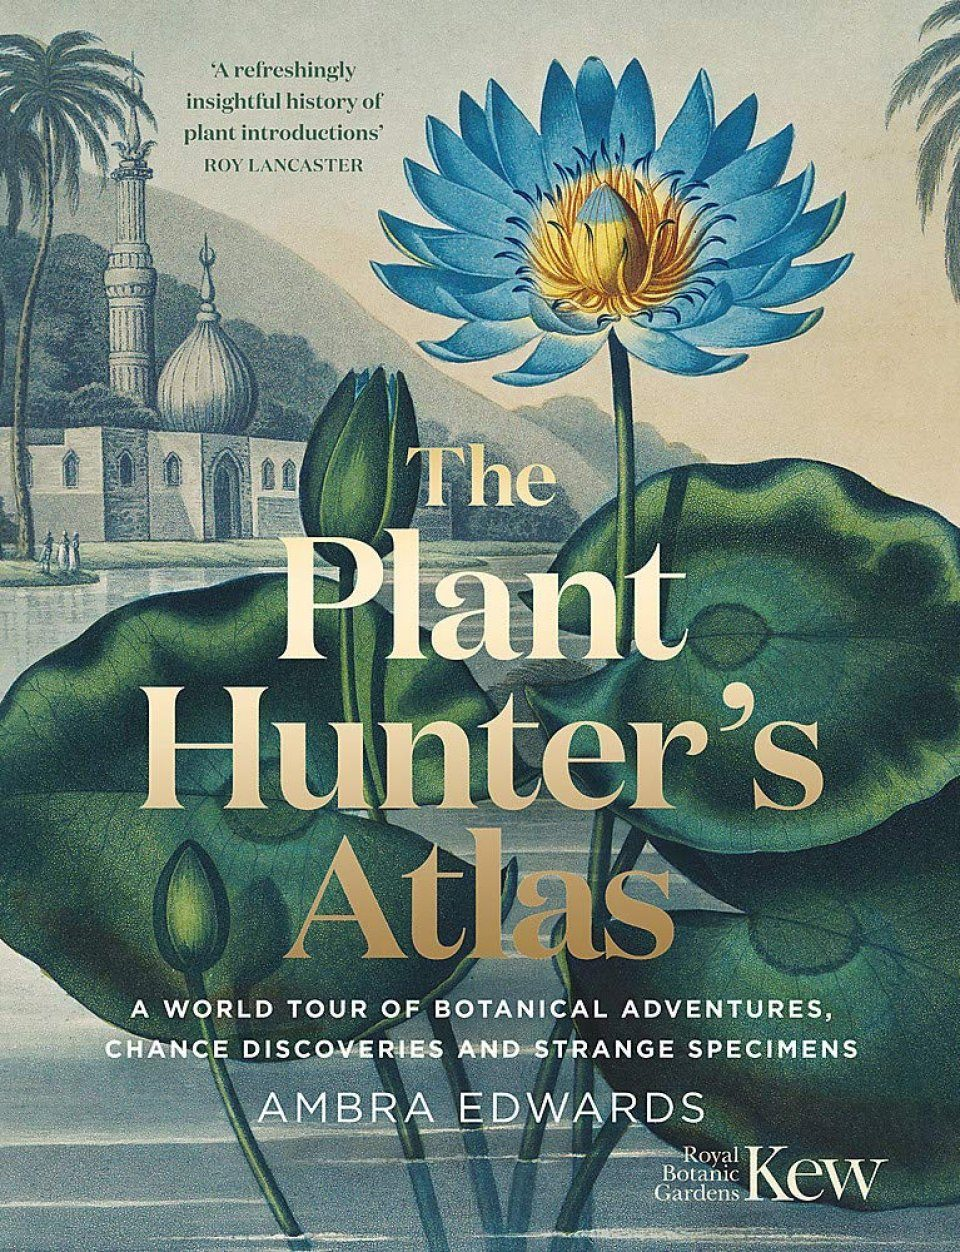 The Plant-Hunter's Atlas